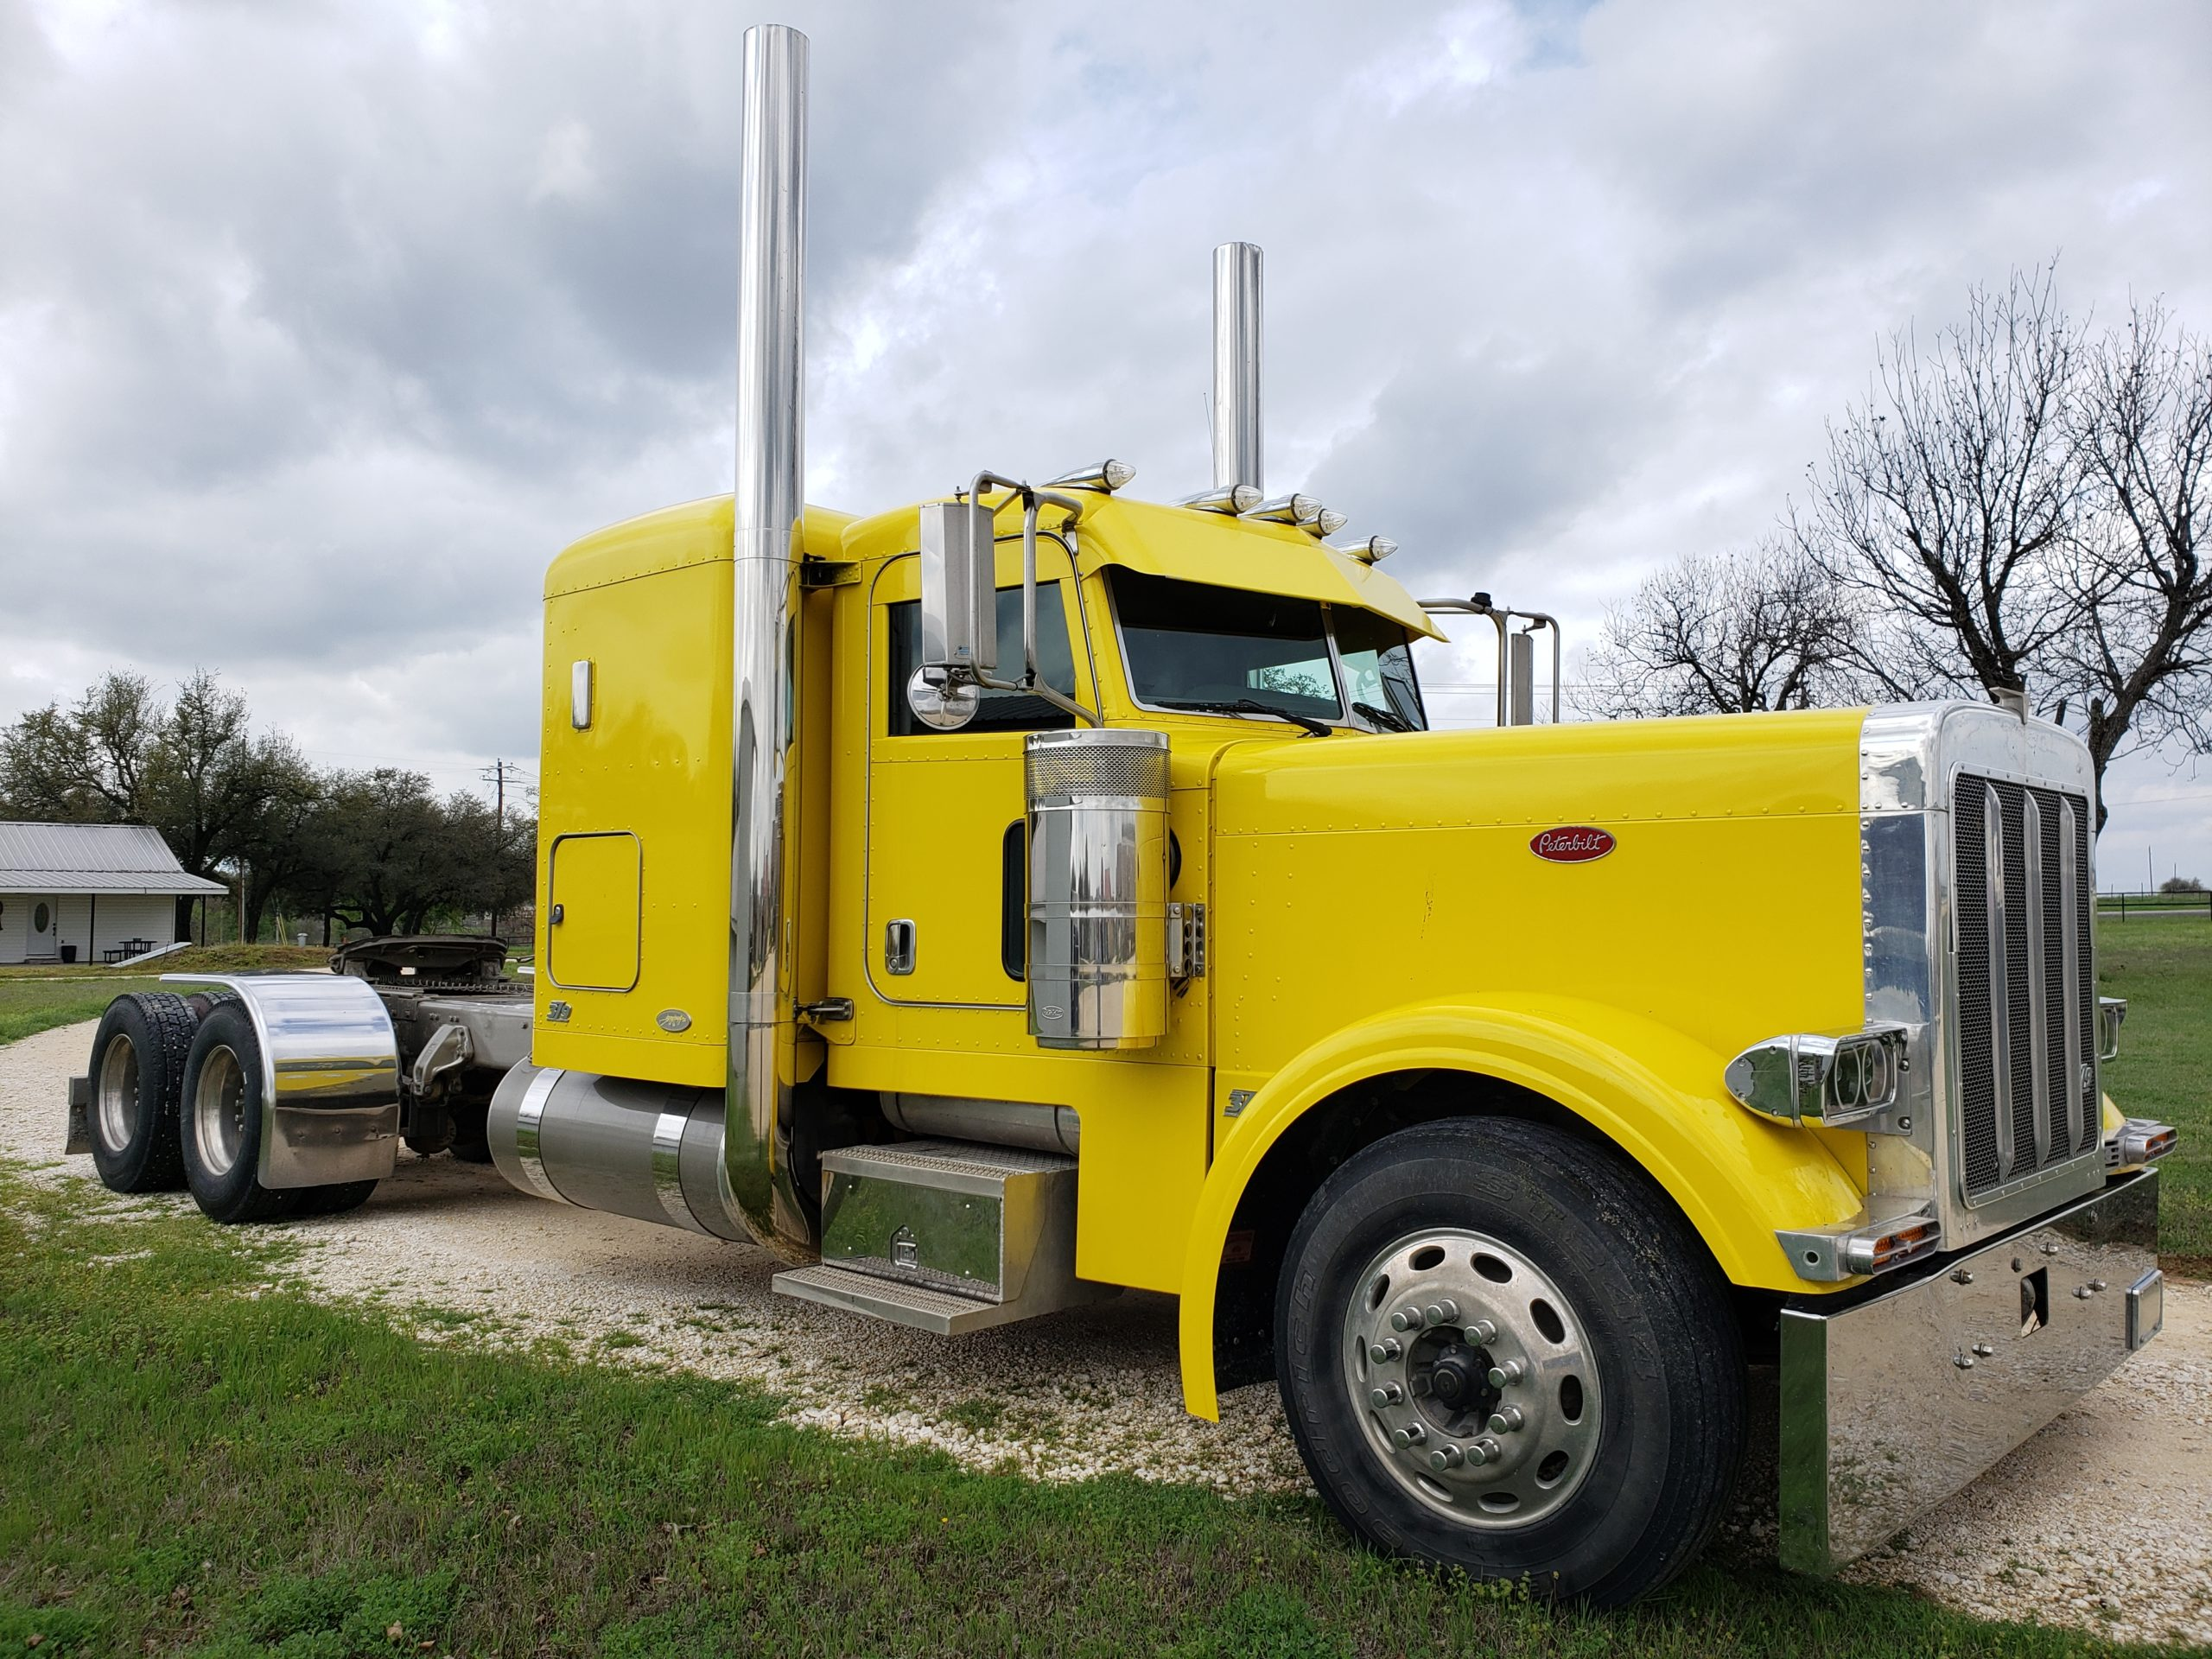 American Eagle Exhaust Stephenville Texas - Stainless Steel Truck Exhaust Kit Straight Cut 9